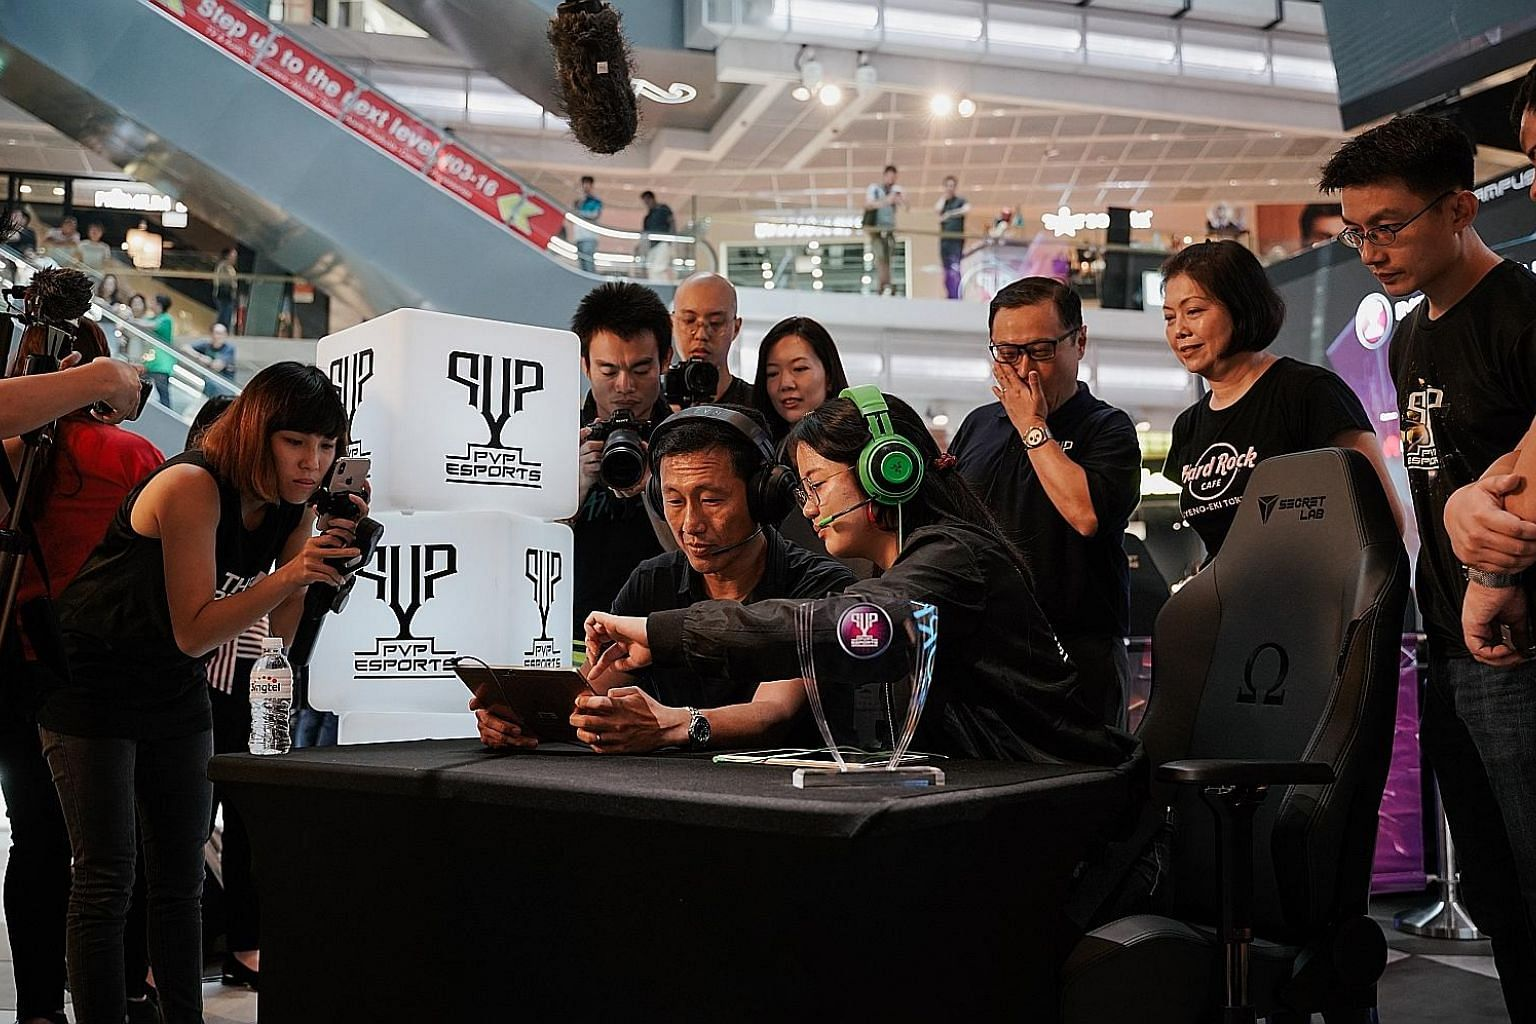 Education Minister Ong Ye Kung trying his hand at popular e-sports game Mobile Legends at Singtel's inaugural PVP Inter-Campus League at Funan mall yesterday.